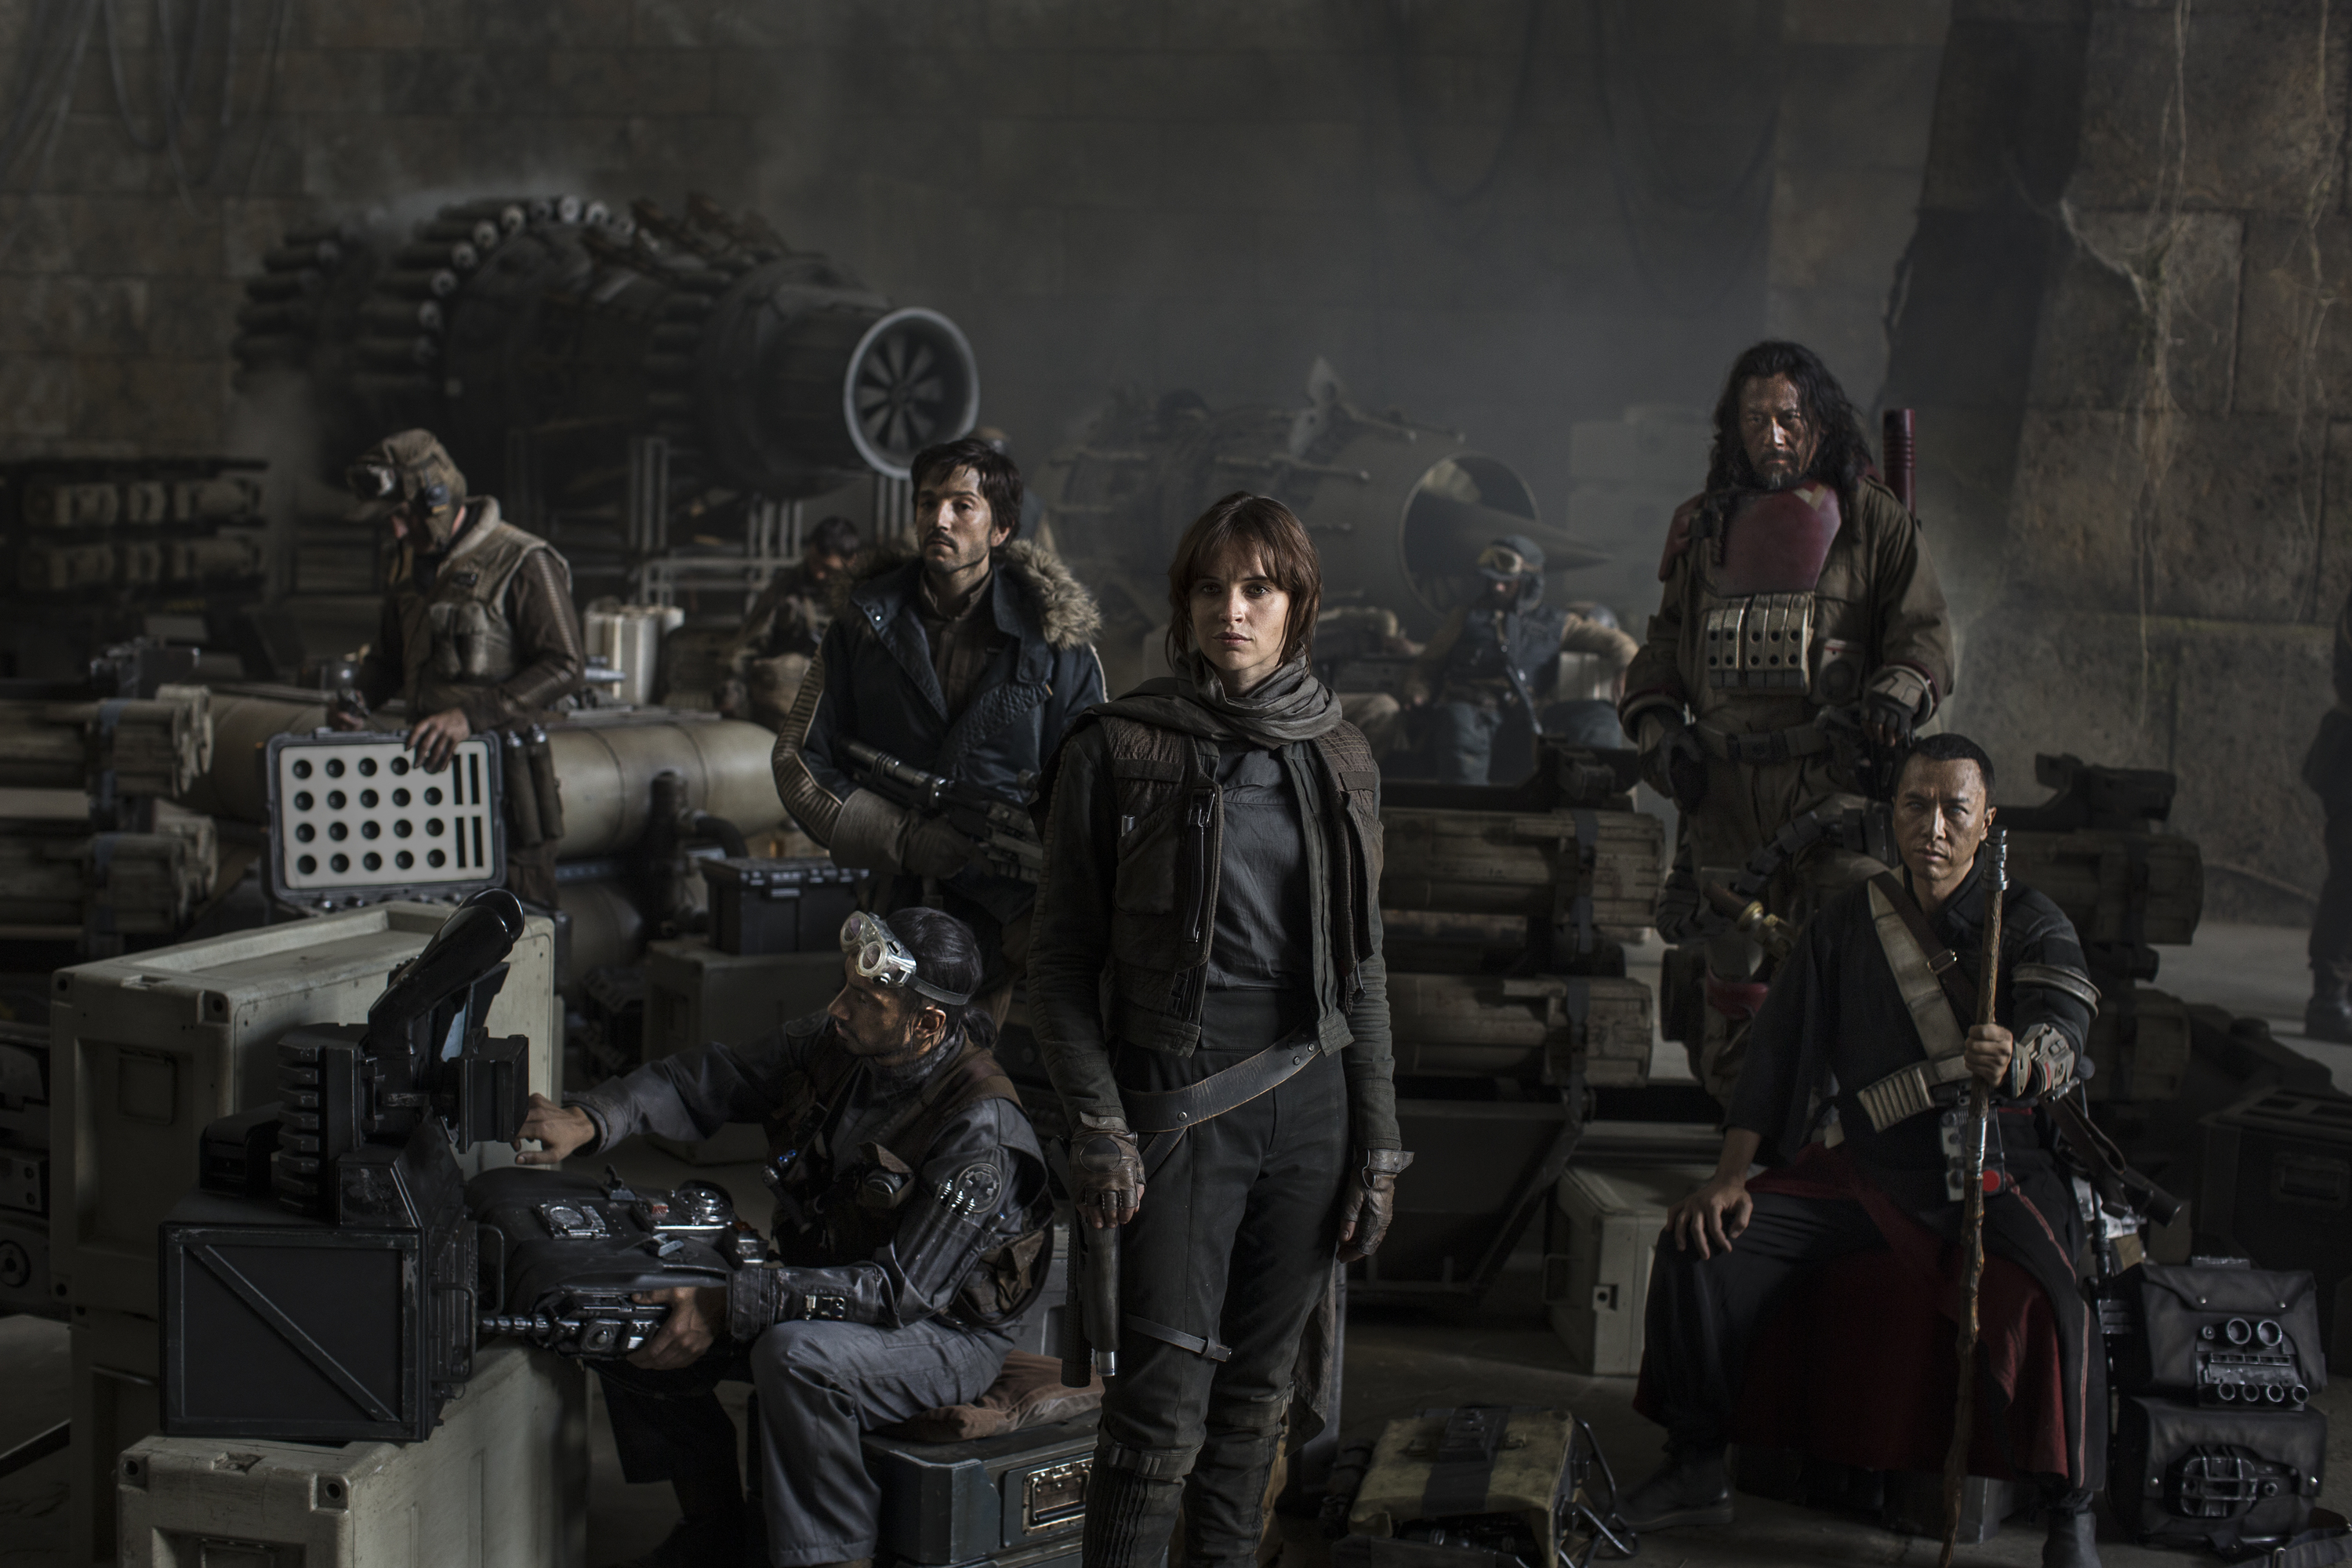 Five things we know about 'Rogue One: A Star Wars Story'